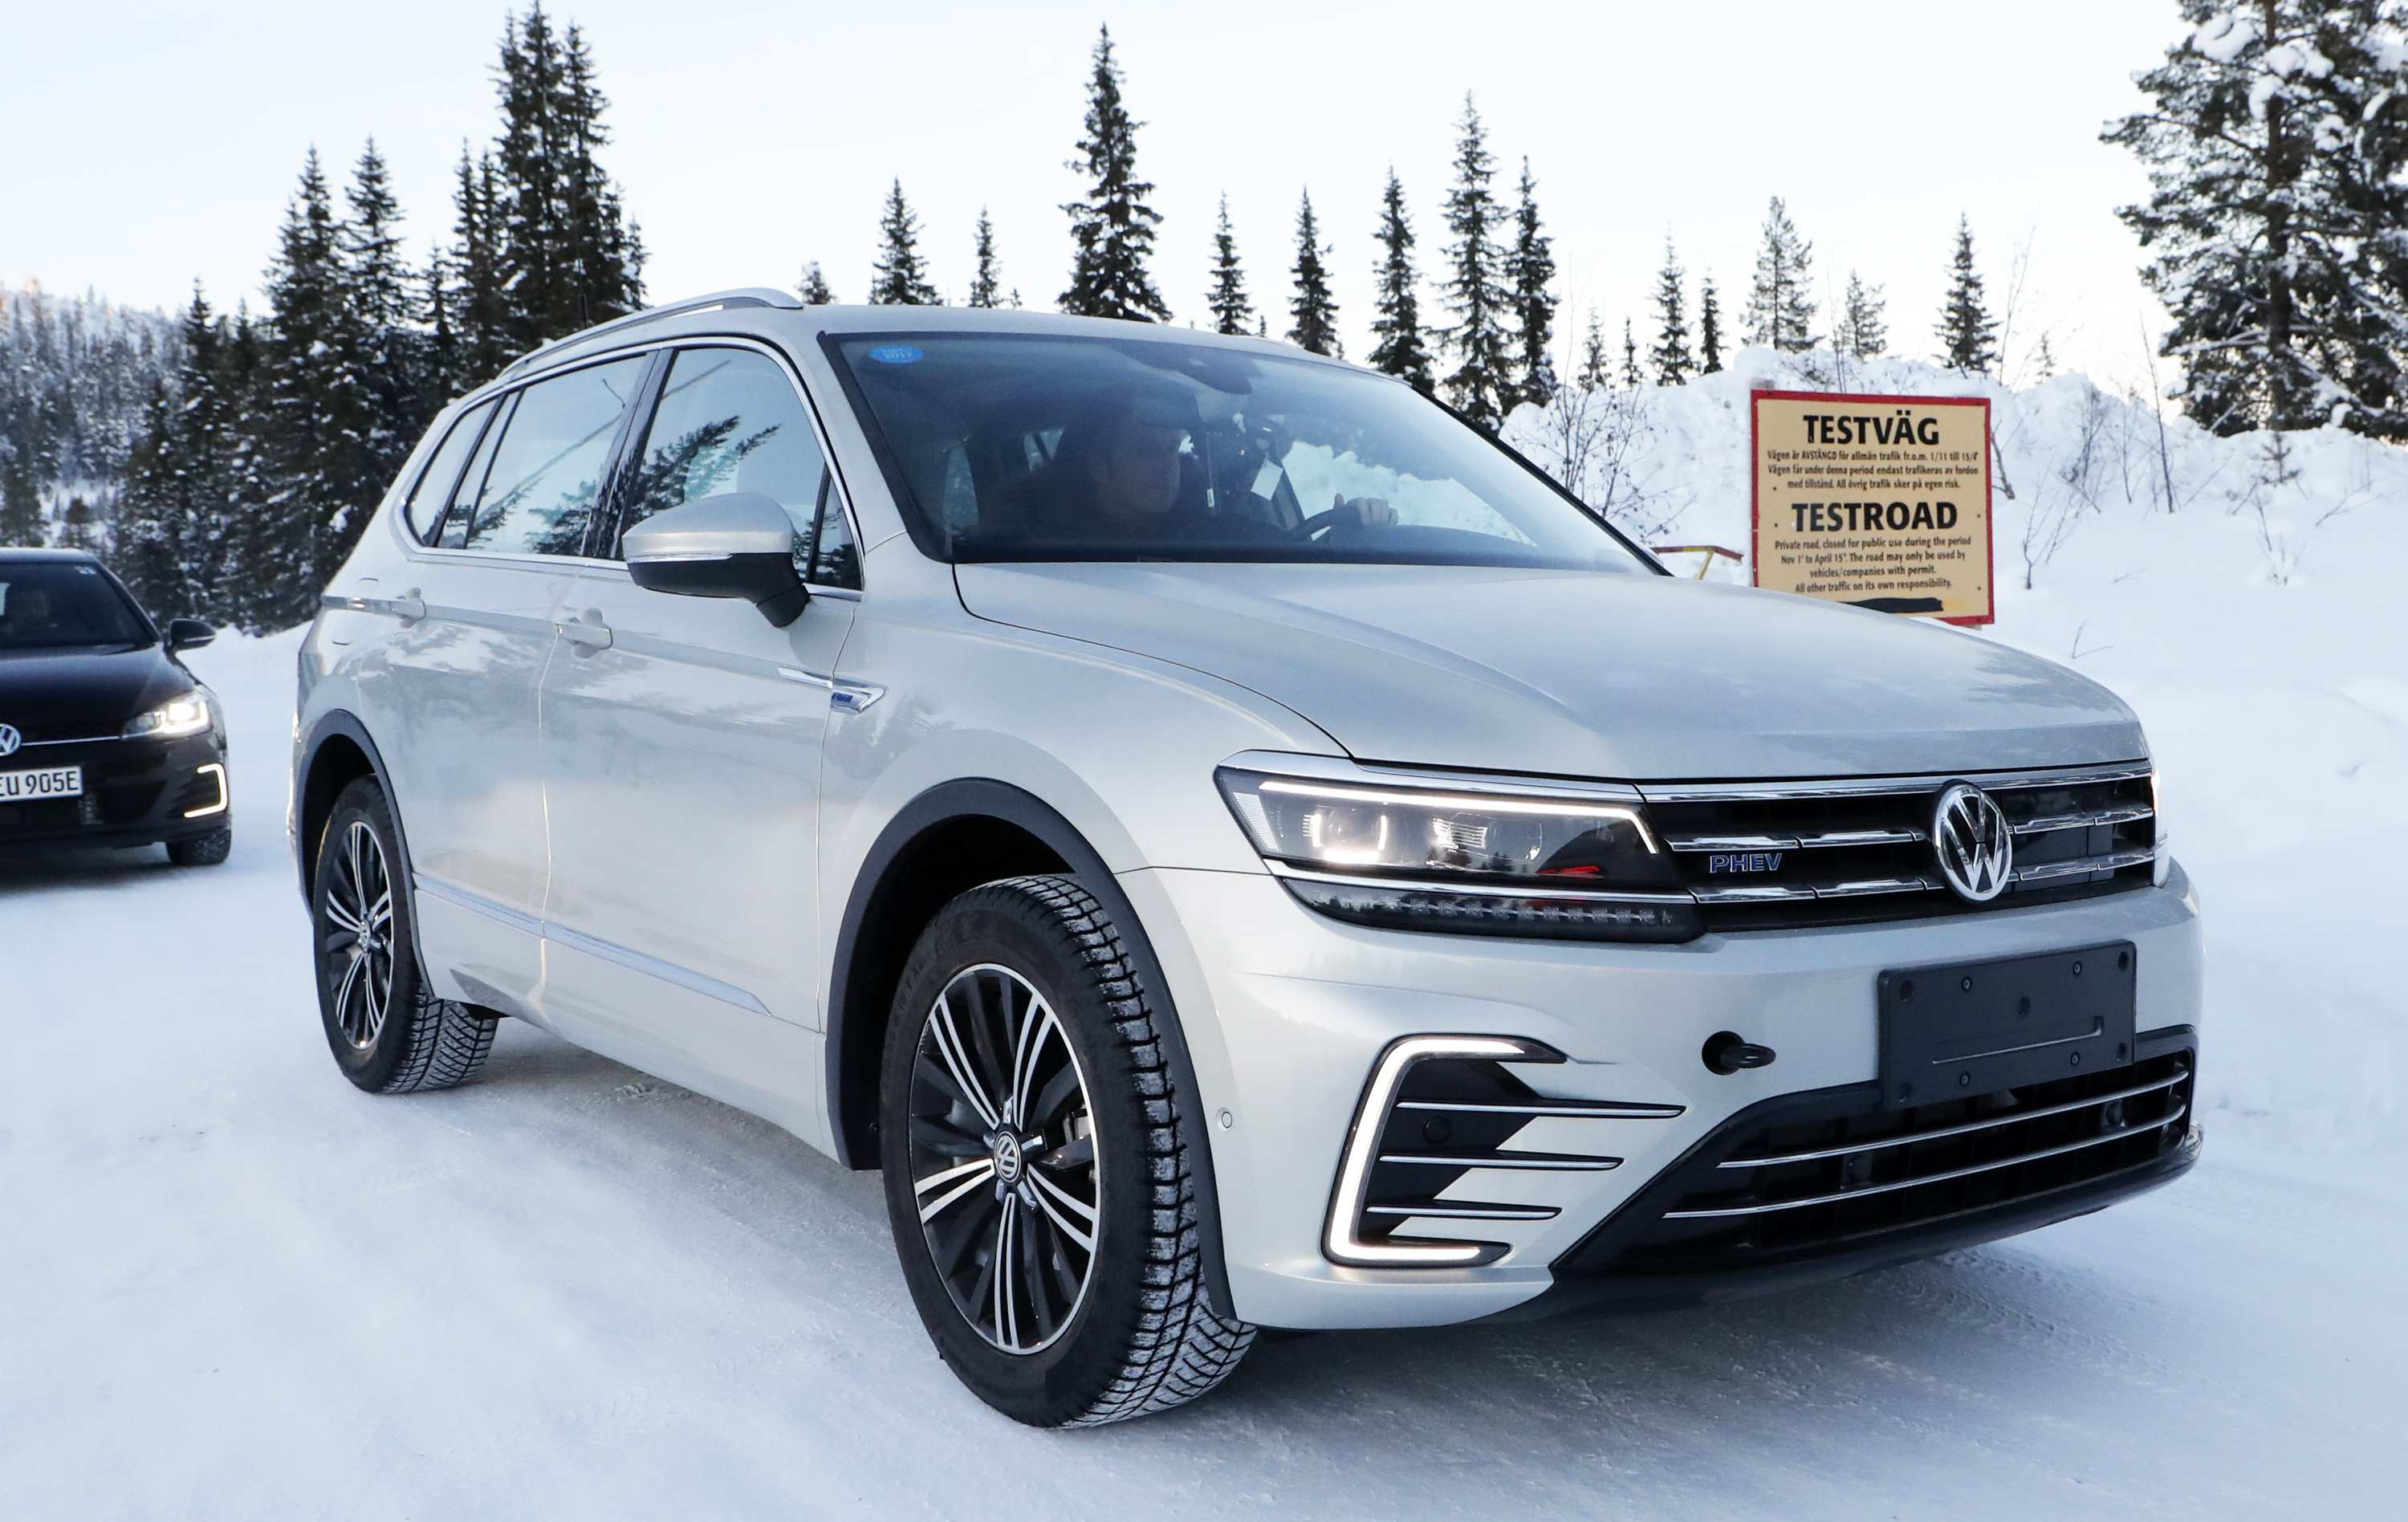 30 All New Best Volkswagen Tiguan 2019 Review Concept Wallpaper with Best Volkswagen Tiguan 2019 Review Concept